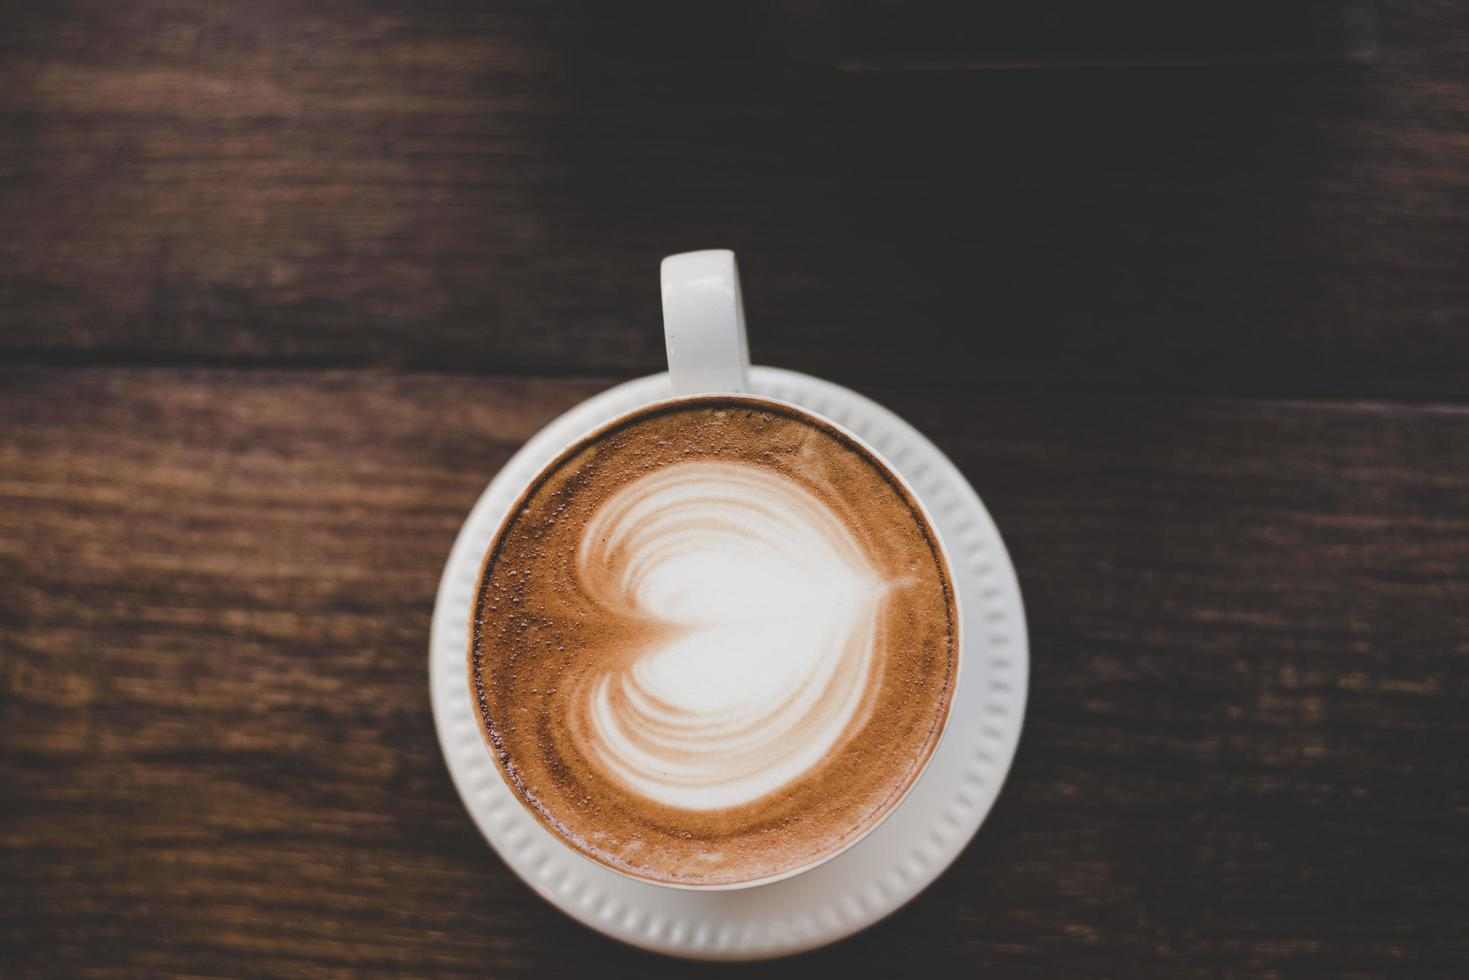 Top view of vintage latte art coffee with heart shape photo